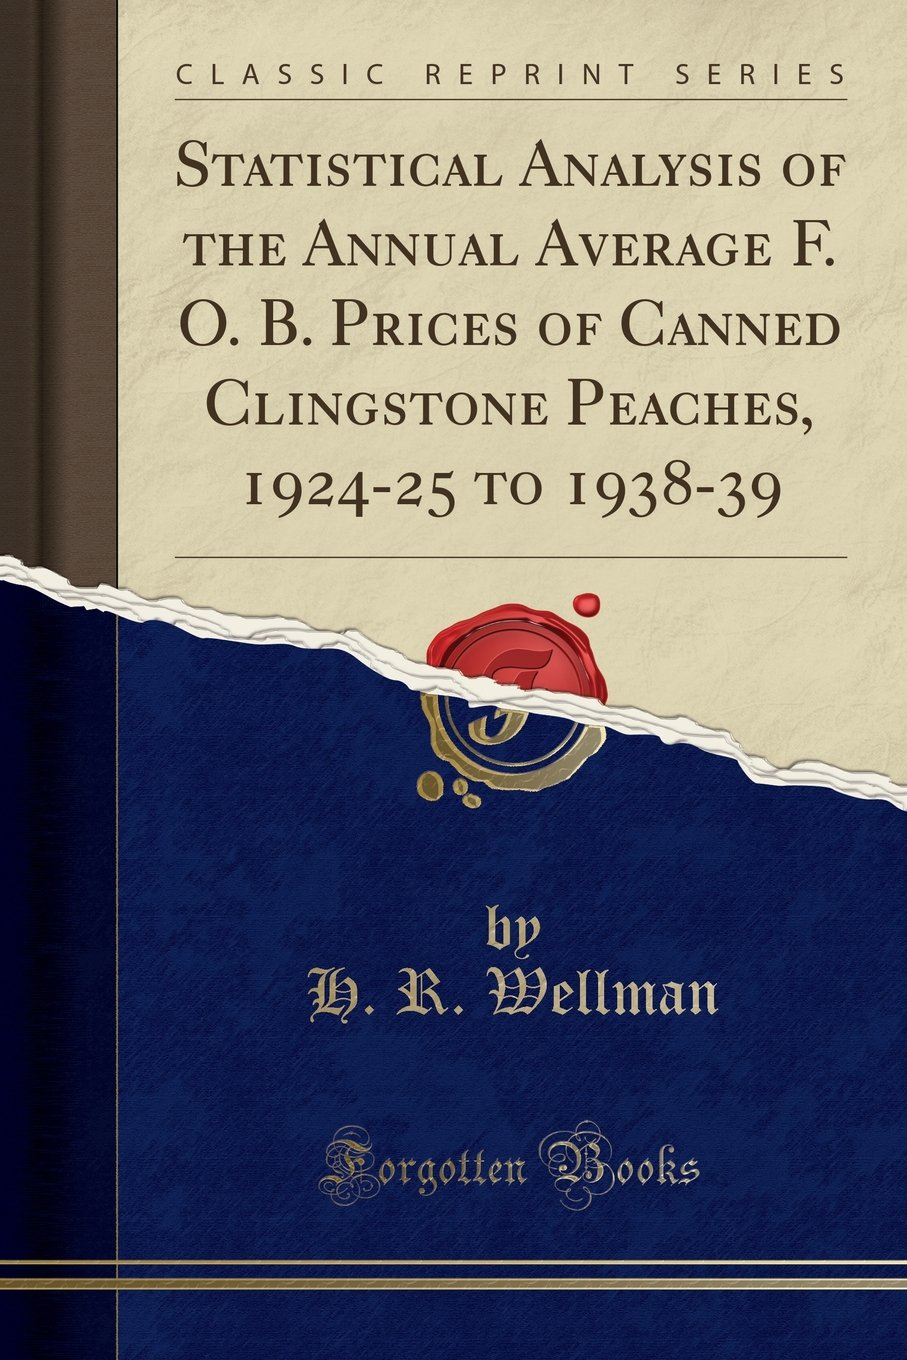 Statistical Analysis of the Annual Average F. O. B. Prices of Canned Clingstone Peaches, 1924-25 to 1938-39 (Classic Reprint) pdf